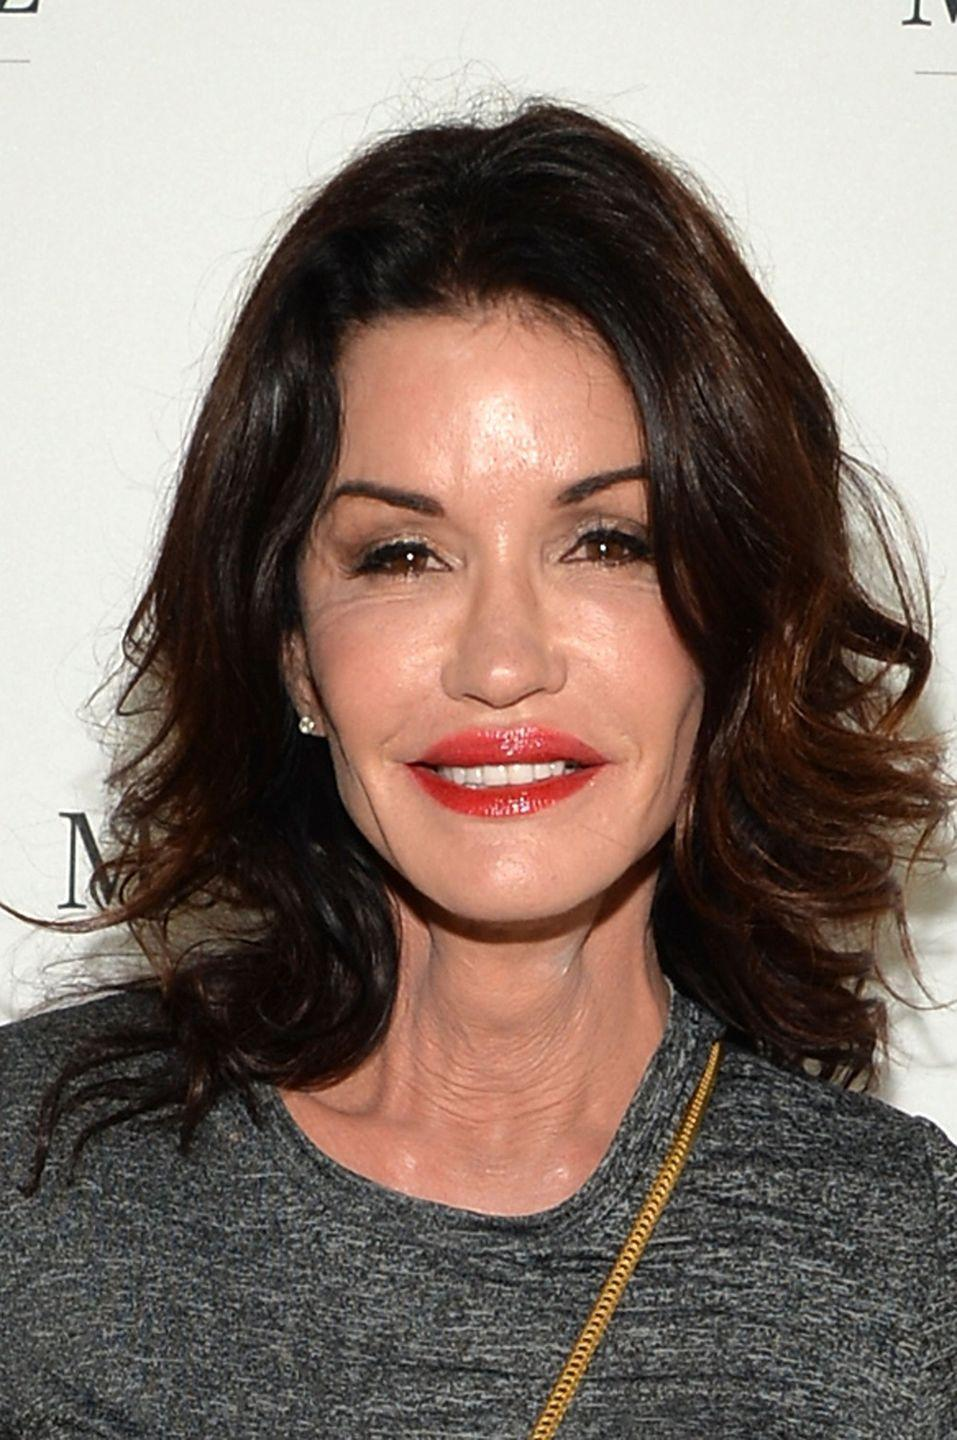 "<p>After being diagnosed with breast cancer, model and actress Janice Dickinson wished she had never gotten breast implants. ""If I had to play my life over again, I would have never gotten breast implants in the first place,"" <a href=""https://www.etonline.com/news/189178_janice_dickinson_reveals_biggest_regret_after_breast_cancer_diagnosis"" rel=""nofollow noopener"" target=""_blank"" data-ylk=""slk:Janice said"" class=""link rapid-noclick-resp"">Janice said</a>. ""I didn't need to have a mastectomy, although I'm so blessed as just Janice being Janice that I said, 'Take them out! Take them out, cut them out! Just take them out now!'""</p>"